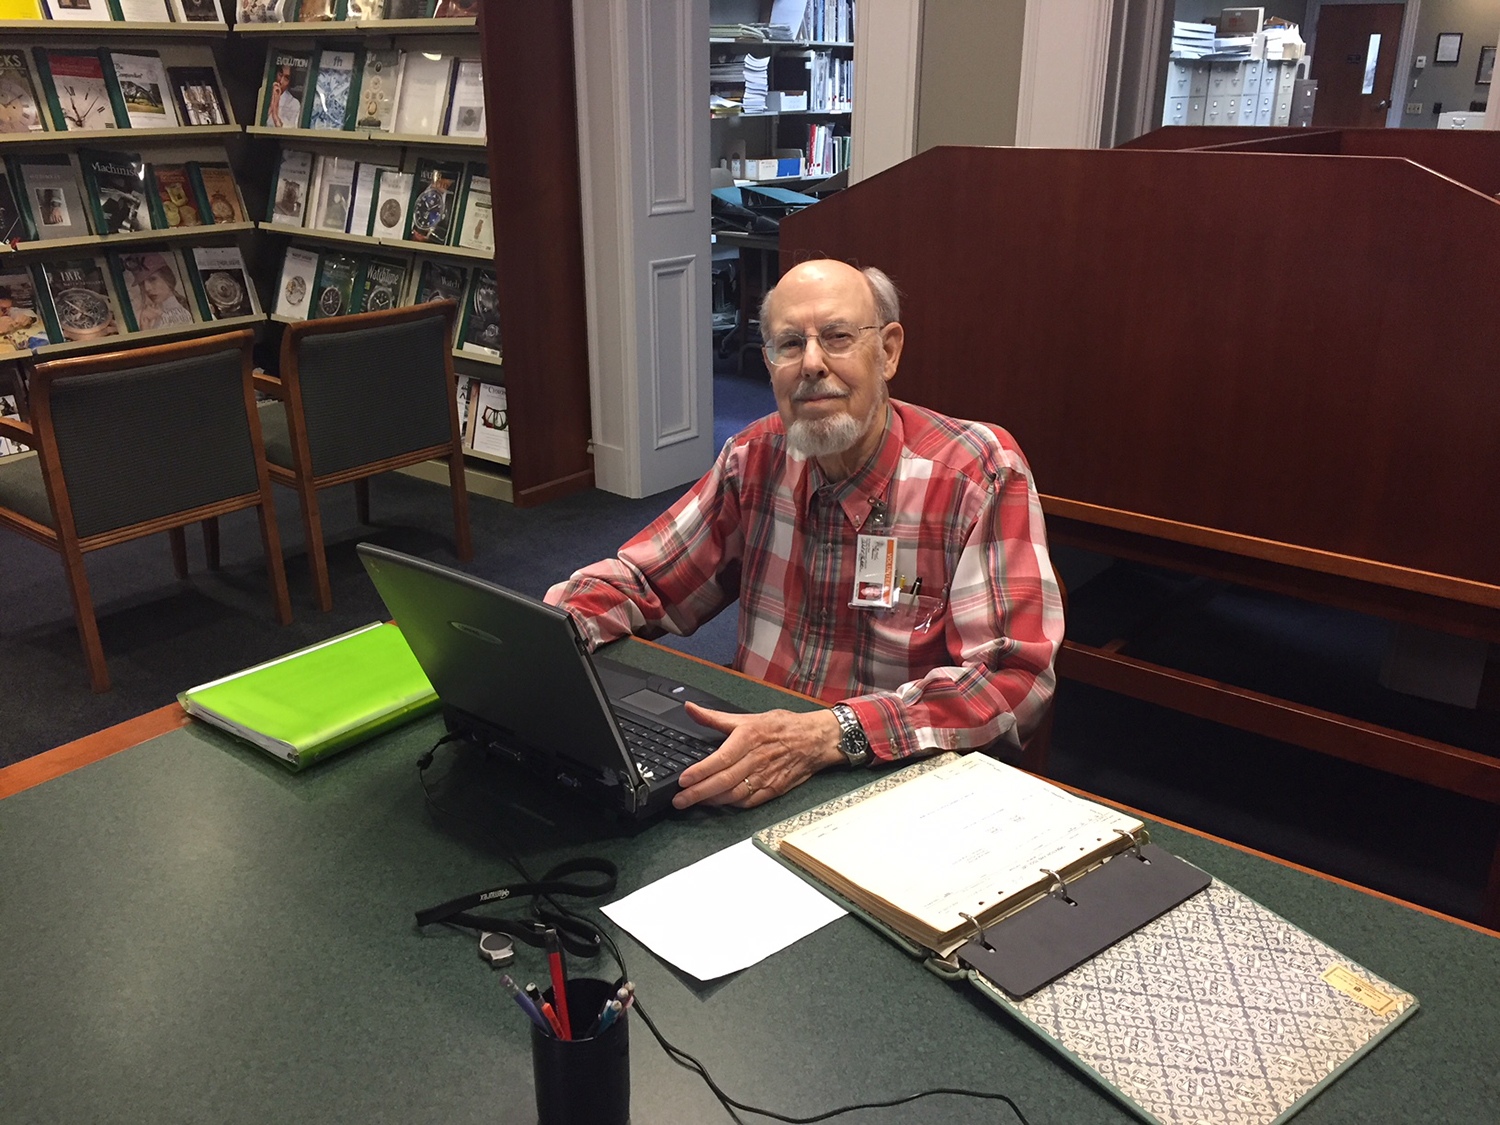 Robert Hostetter worked for Hamilton Watch Co. from 1957 to 1997 starting as a draftsmen and then manufacturing engineer. Hostetter volunteers every Tuesday to archive material for the NAWCC Museum Library & Research Center.